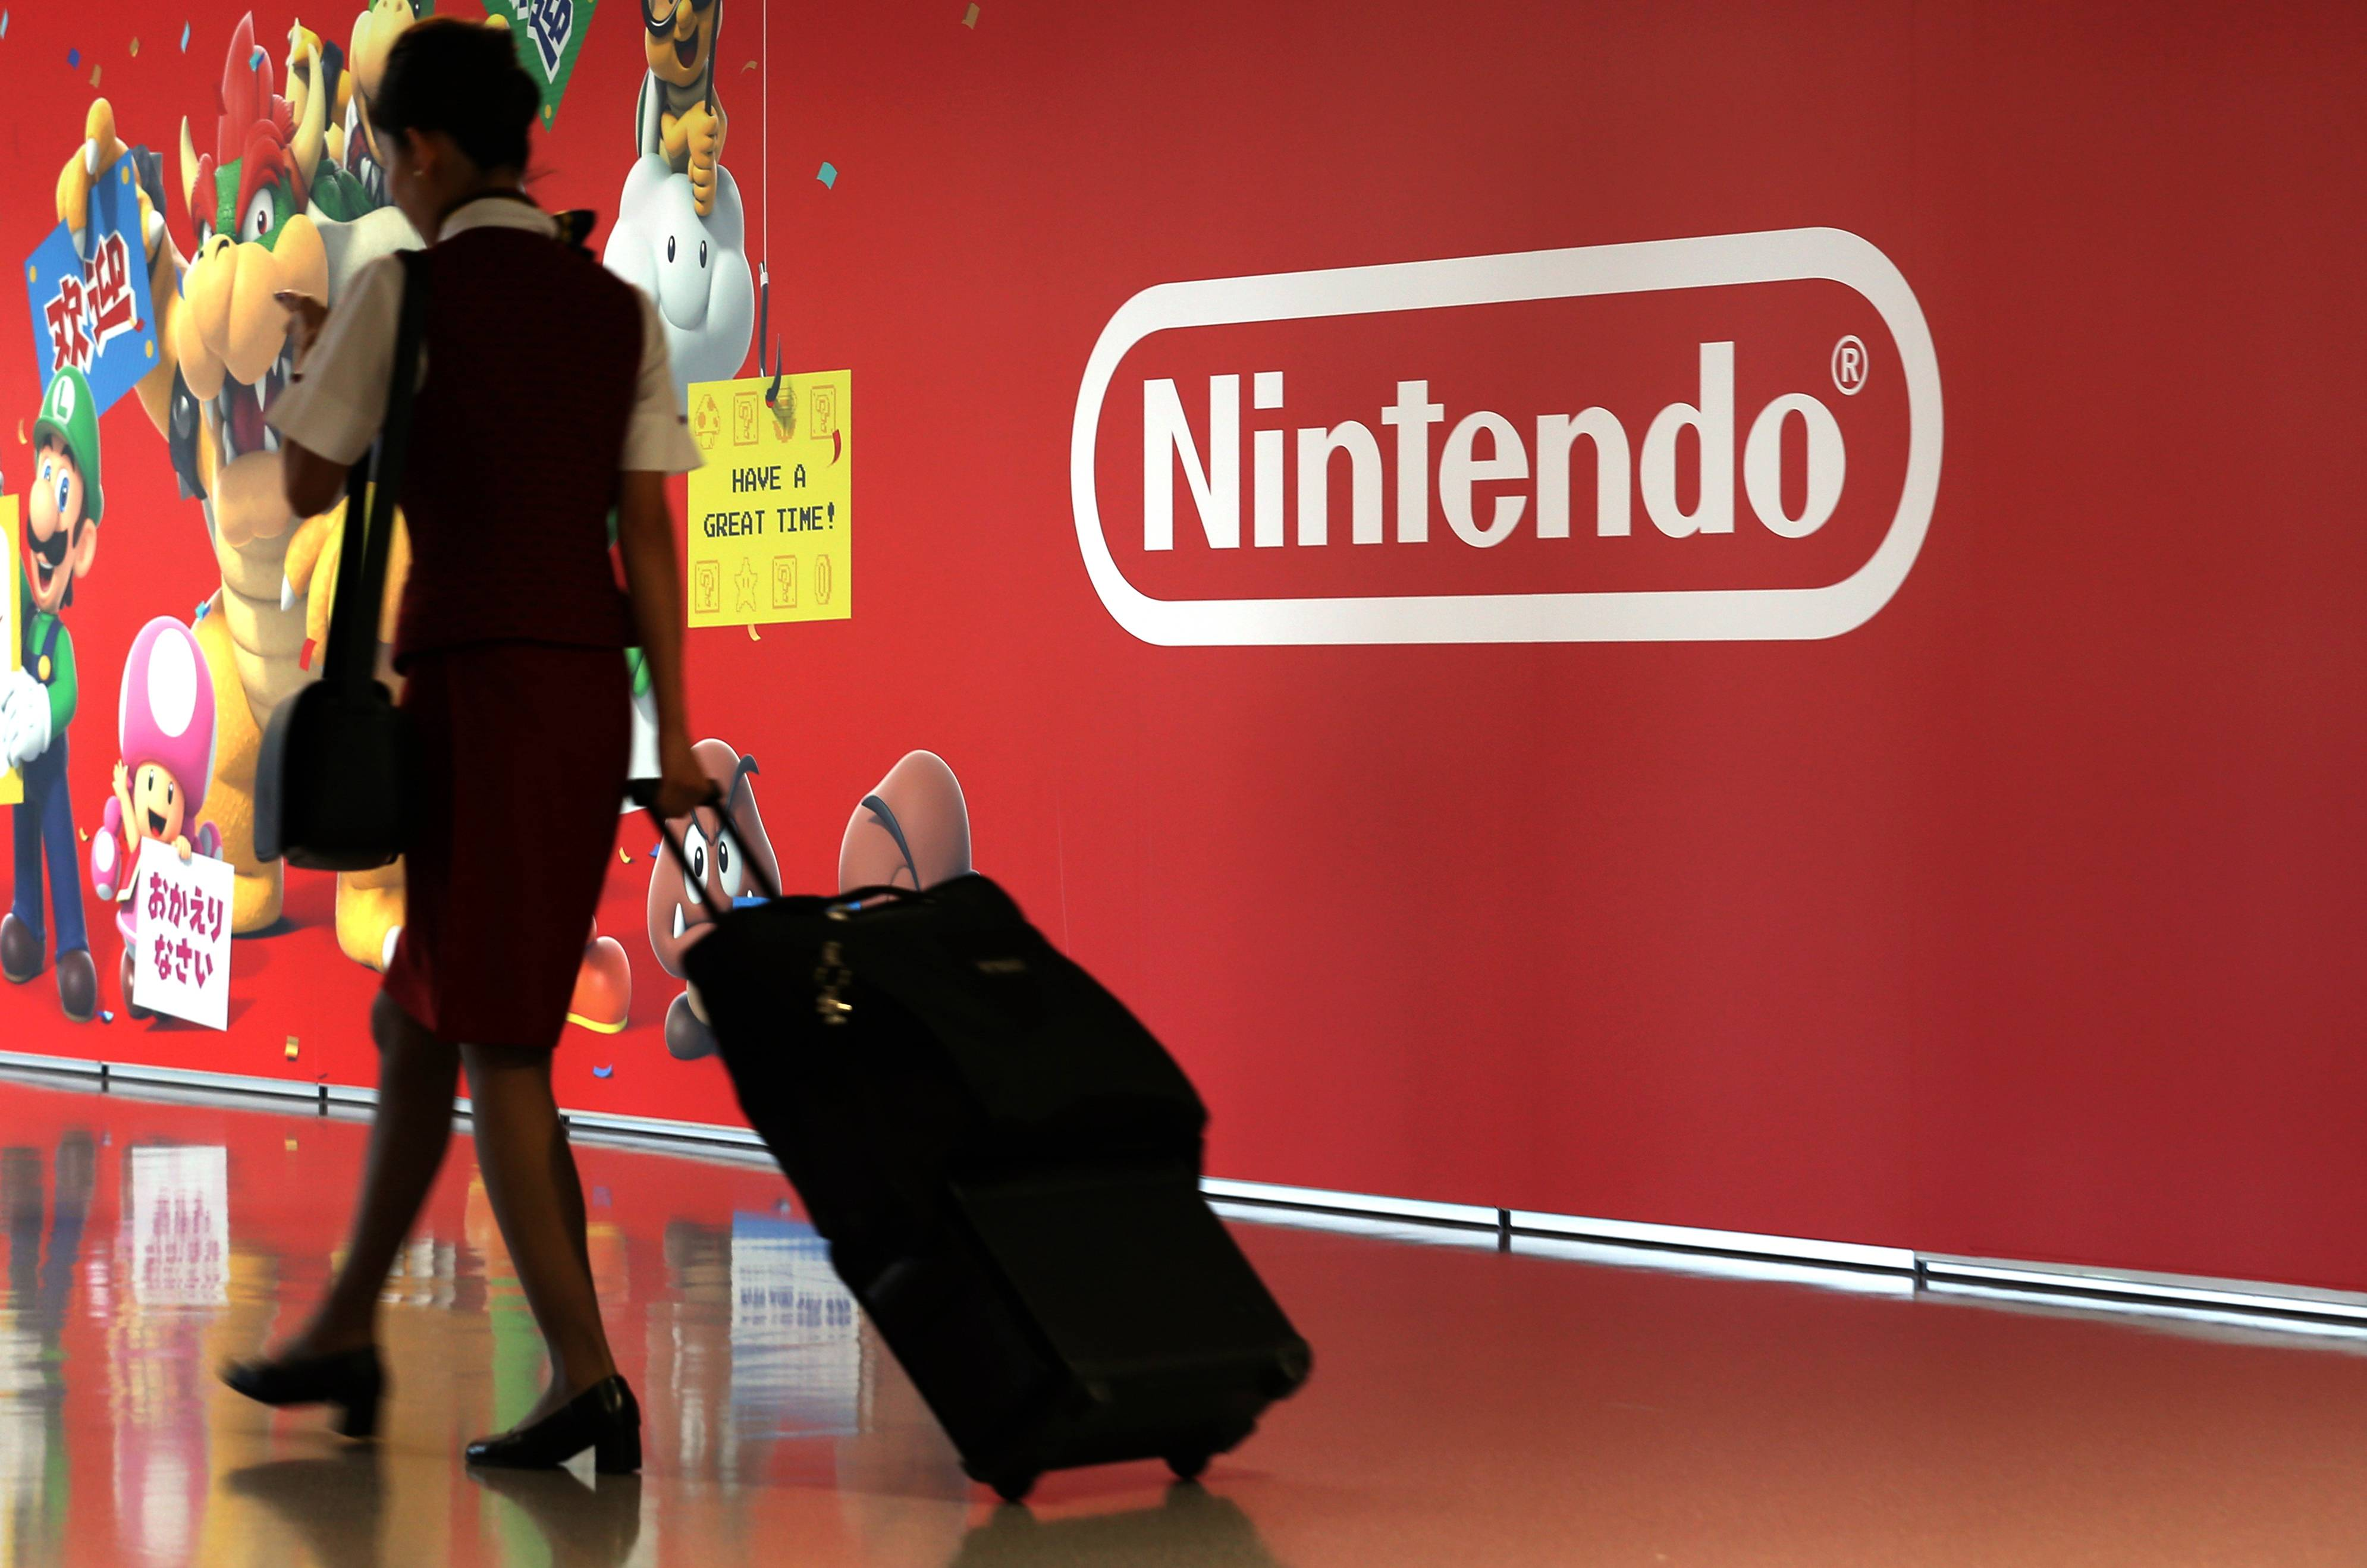 An airline employee walks past a mural featuring characters from Nintendo Co.'s Super Mario video games at Terminal 1 of Kansai International Airport in Japan.